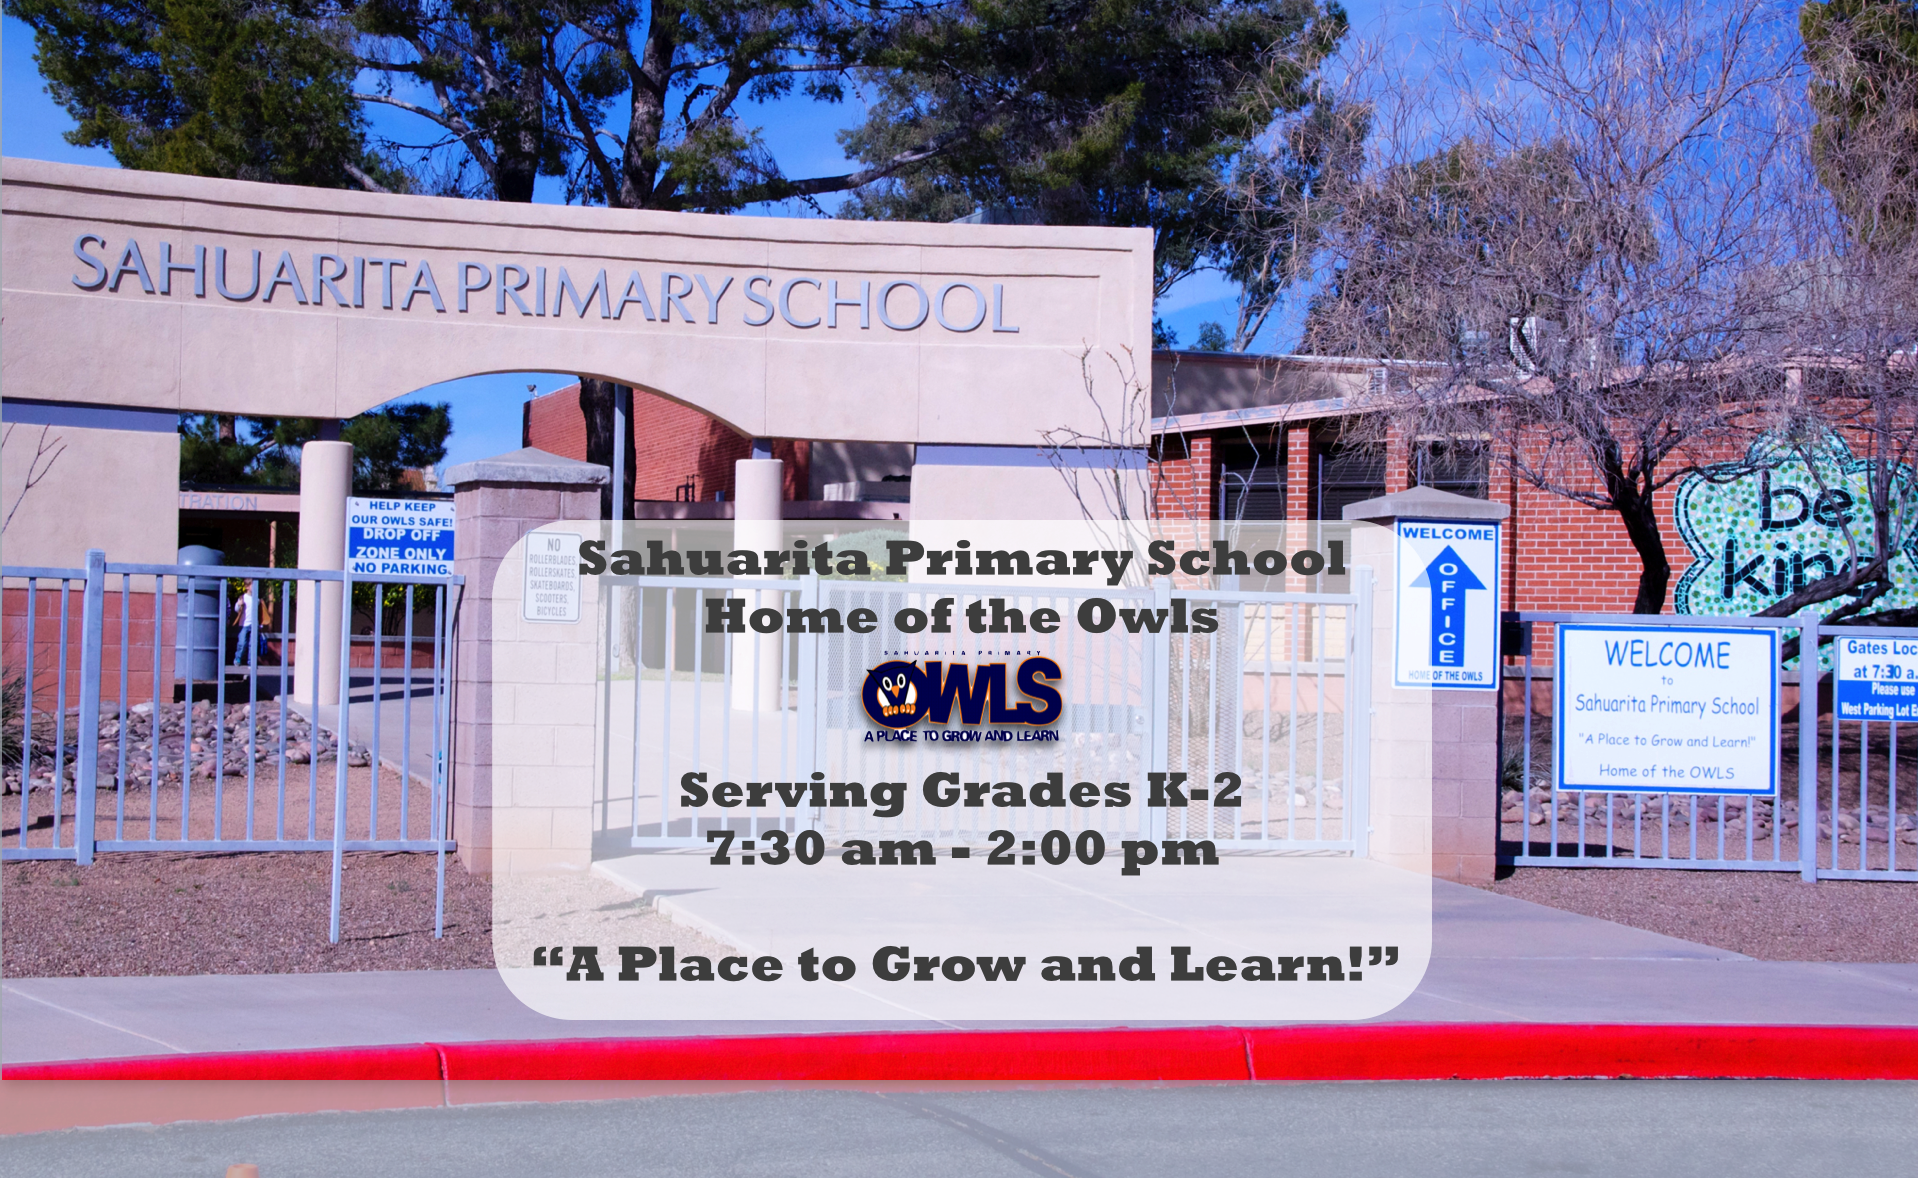 Sahuarita Primary School